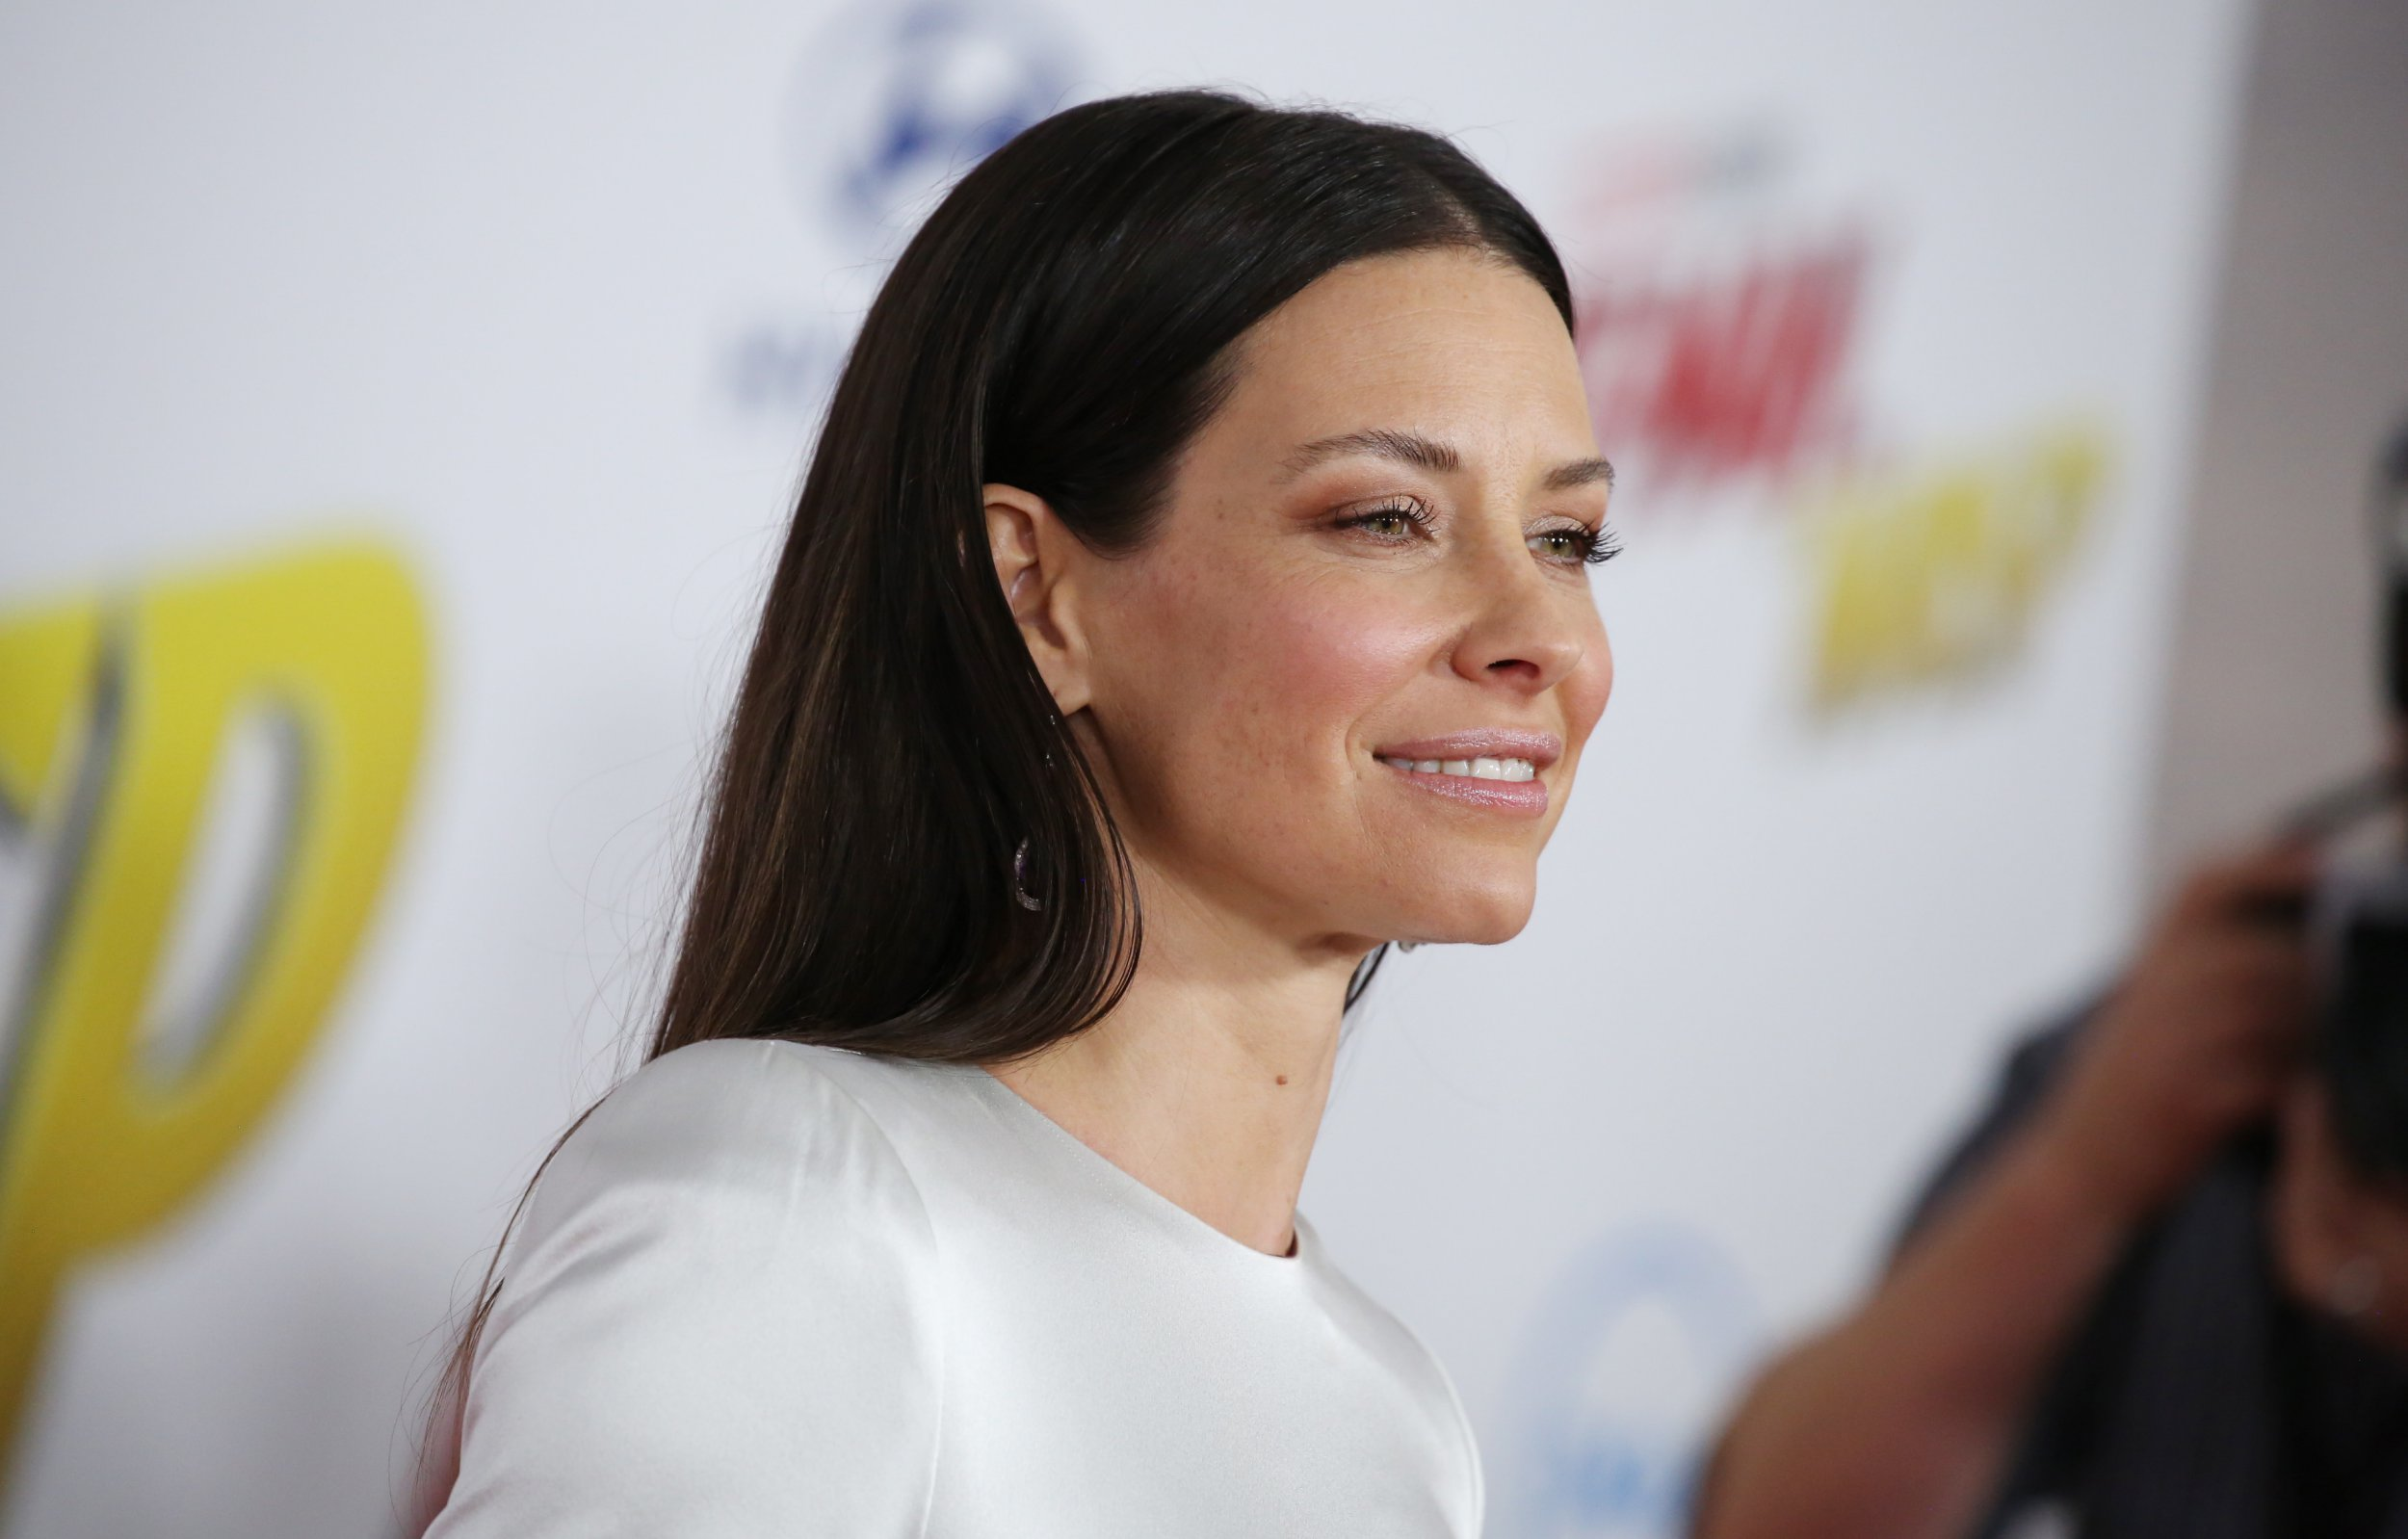 Ant-Man and the Wasp's Evangeline Lilly admits she almost quit acting after working on Lost